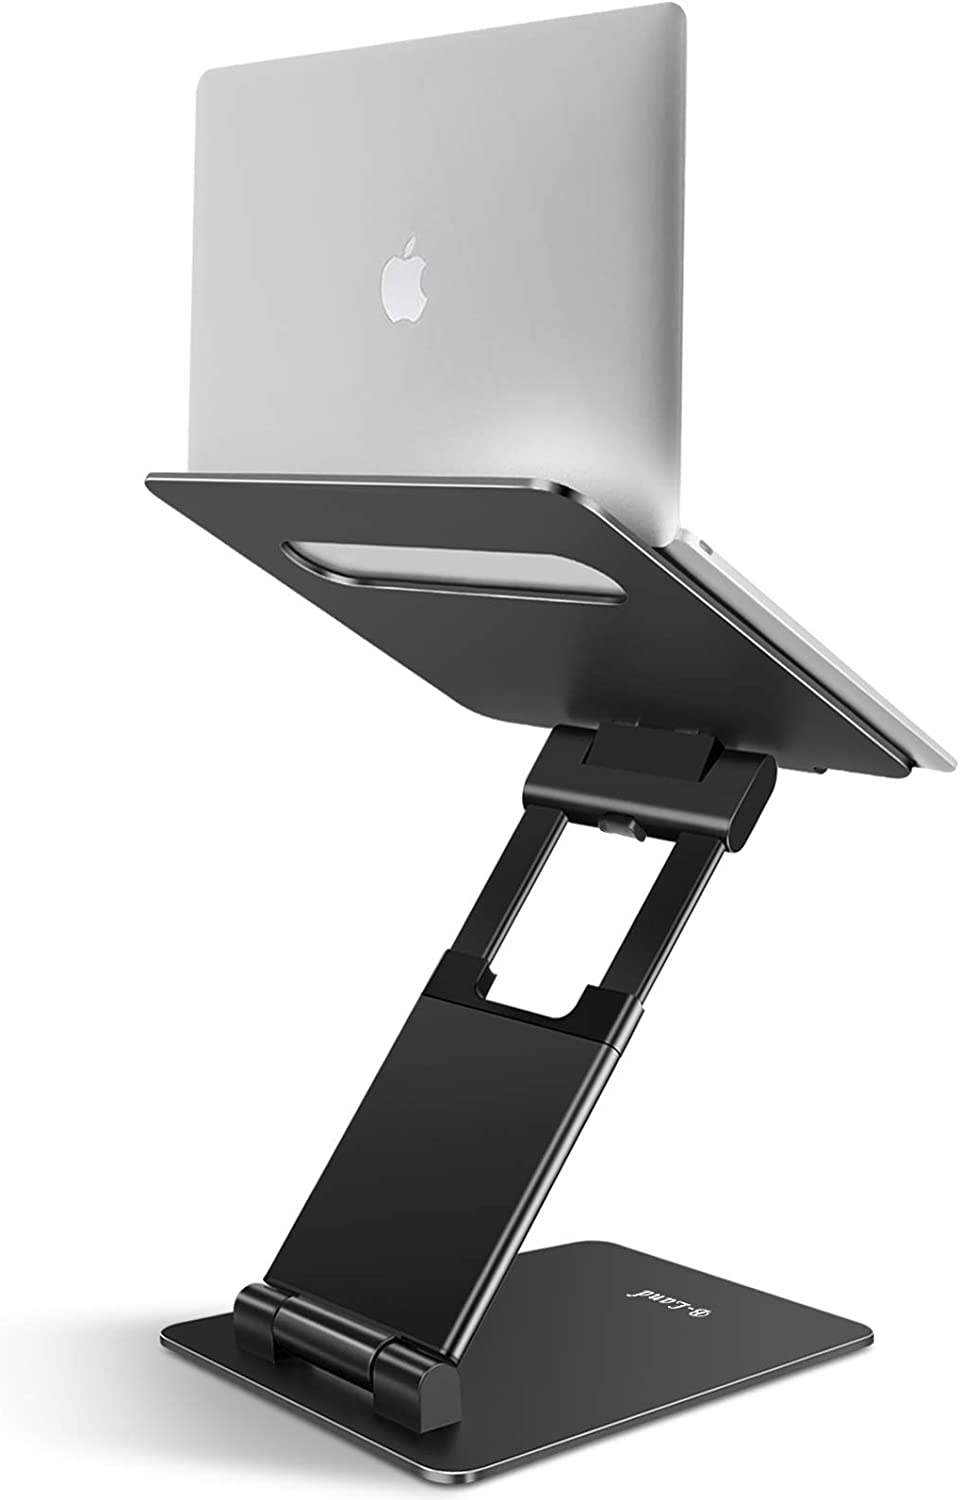 "B-Land Laptop Stand, Adjustable Laptop Stand Holder Ergonomic Laptop Riser Aluminum Computer Stand Compatible with MacBook, Air, Pro, Dell XPS, Samsung, Lenovo, Alienware All Laptops 10-17"" (Black)"